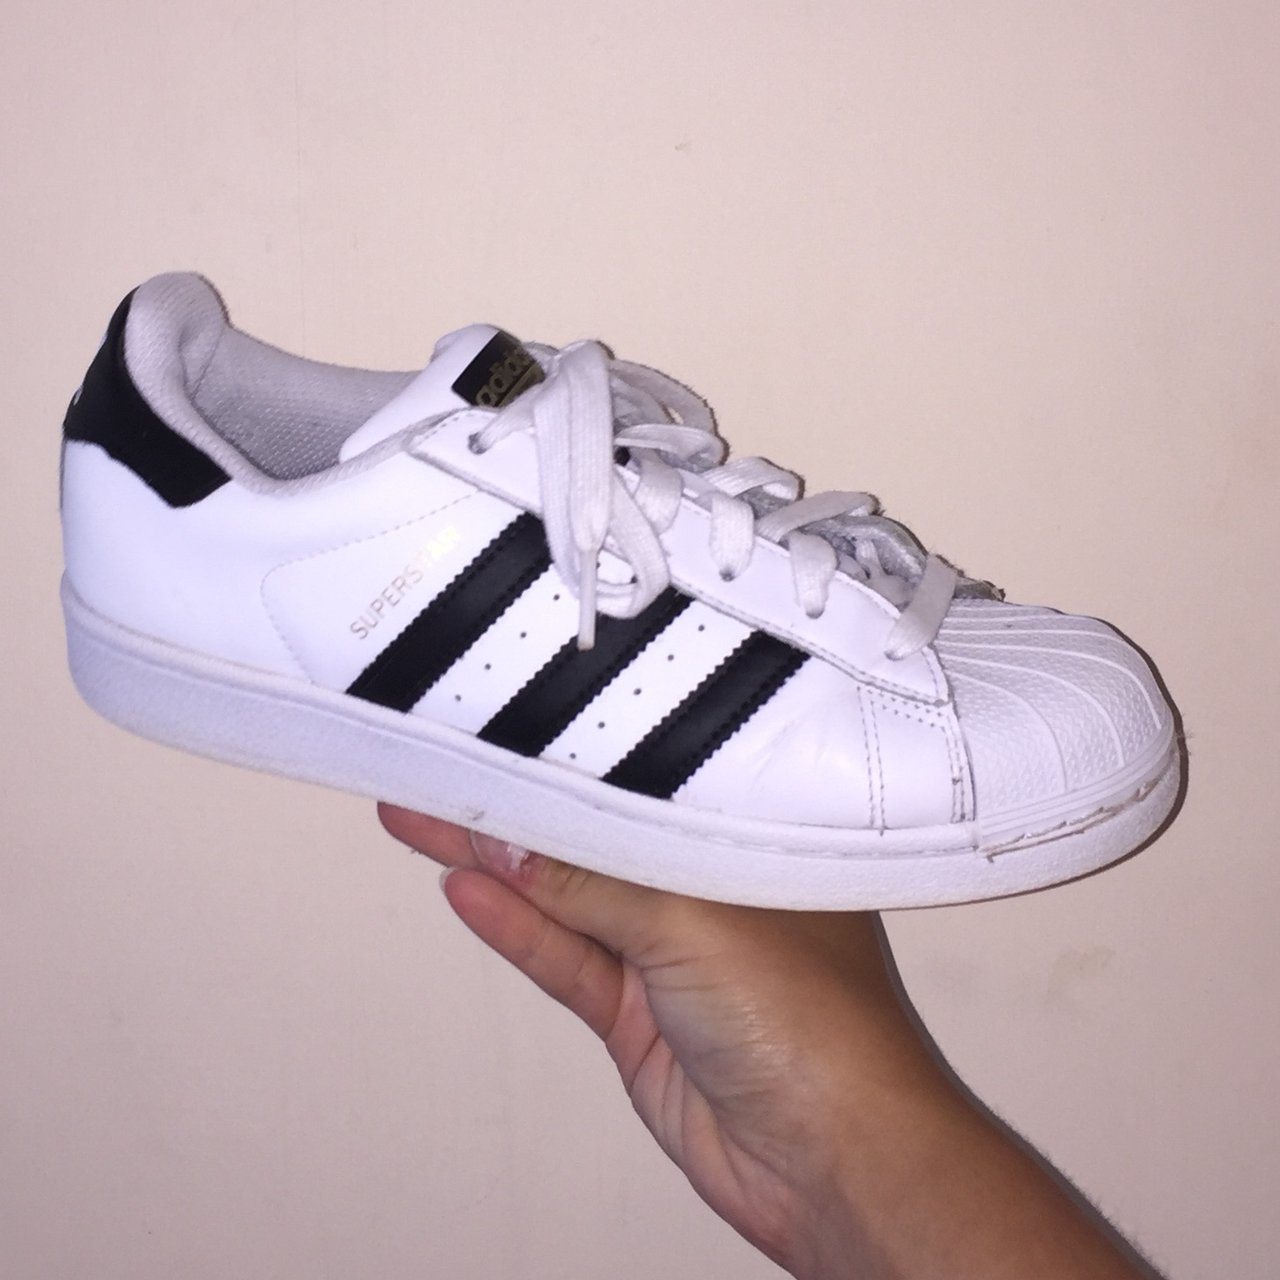 chltem. 6 months ago. United Kingdom. Adidas Superstars classic white and  black. 6677c682b